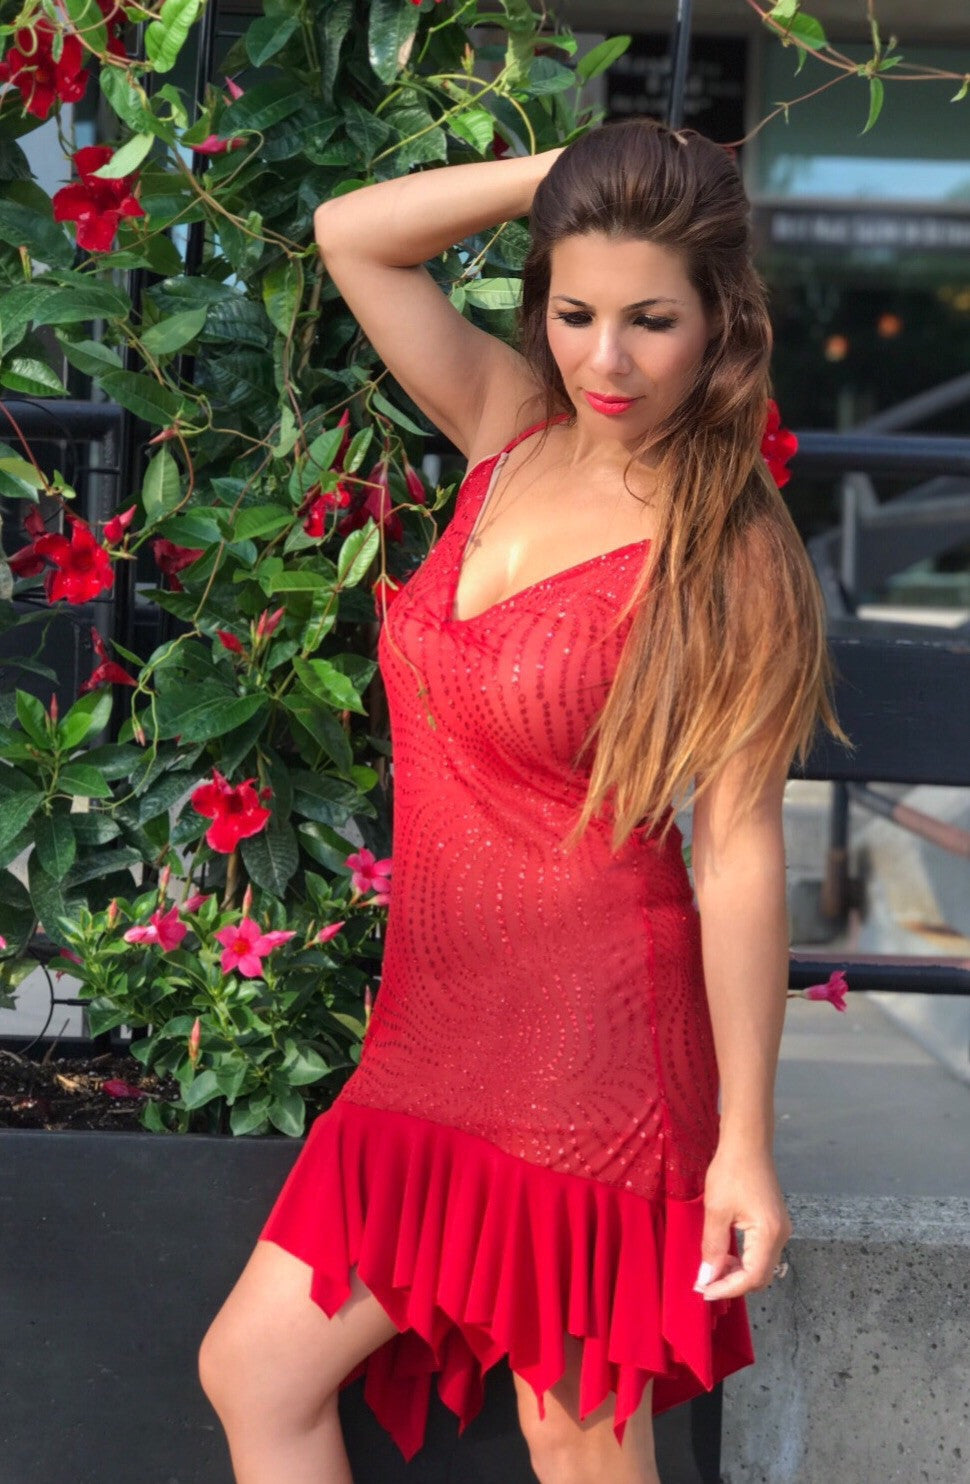 Red Sultry Salsa Dress with Sequins - Bailemos Dancewear